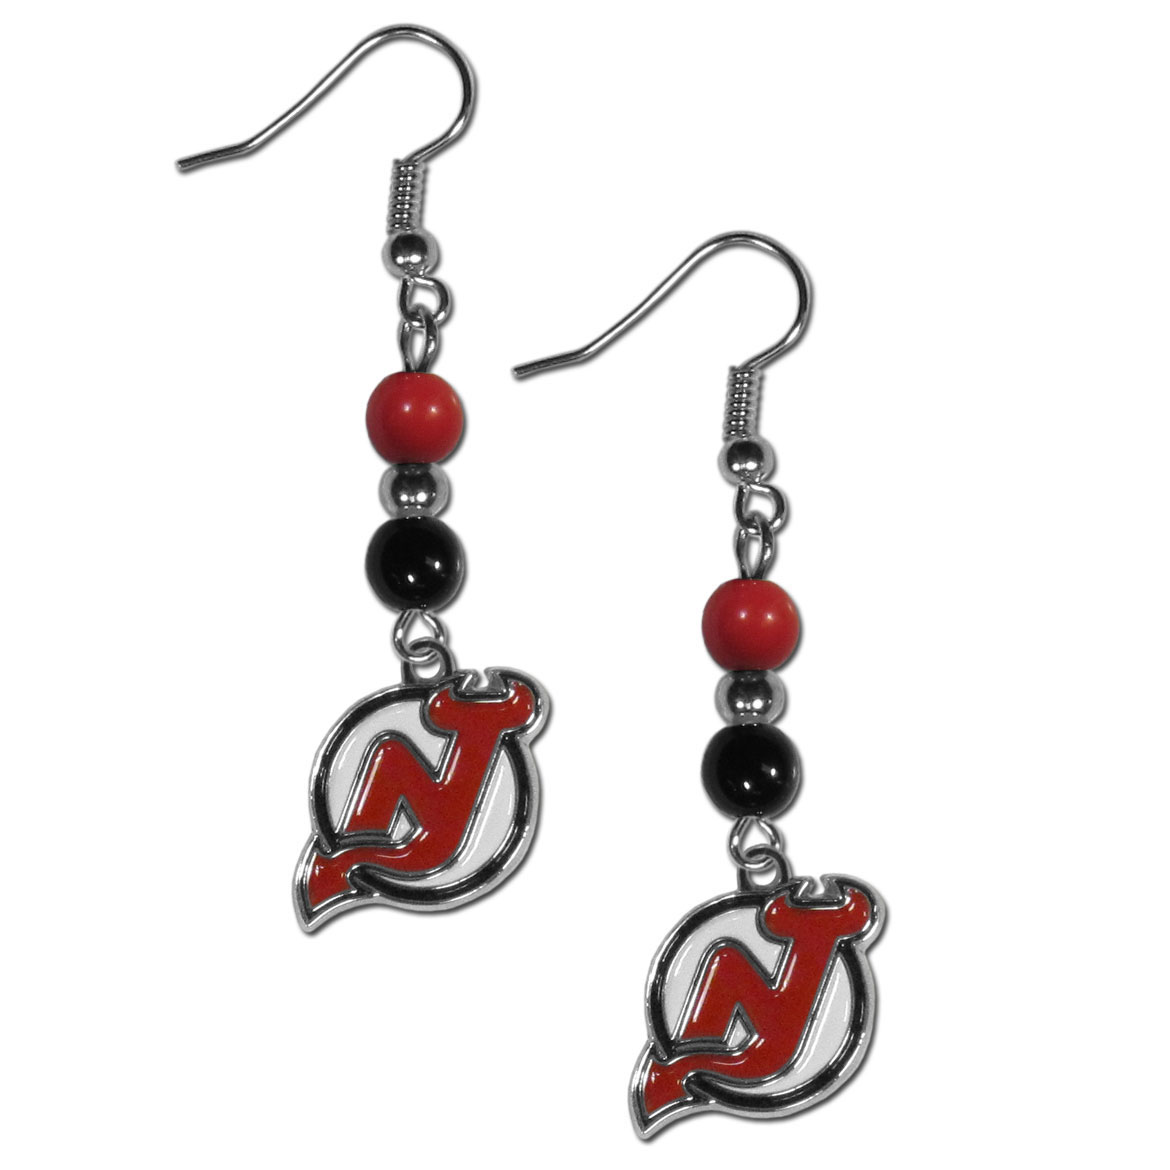 New Jersey Devils® Fan Bead Dangle Earrings - Love your team, show it off with our New Jersey Devils® bead dangle earrings! These super cute earrings hang approximately 2 inches and features 2 team colored beads and a high polish team charm. A must have for game day!